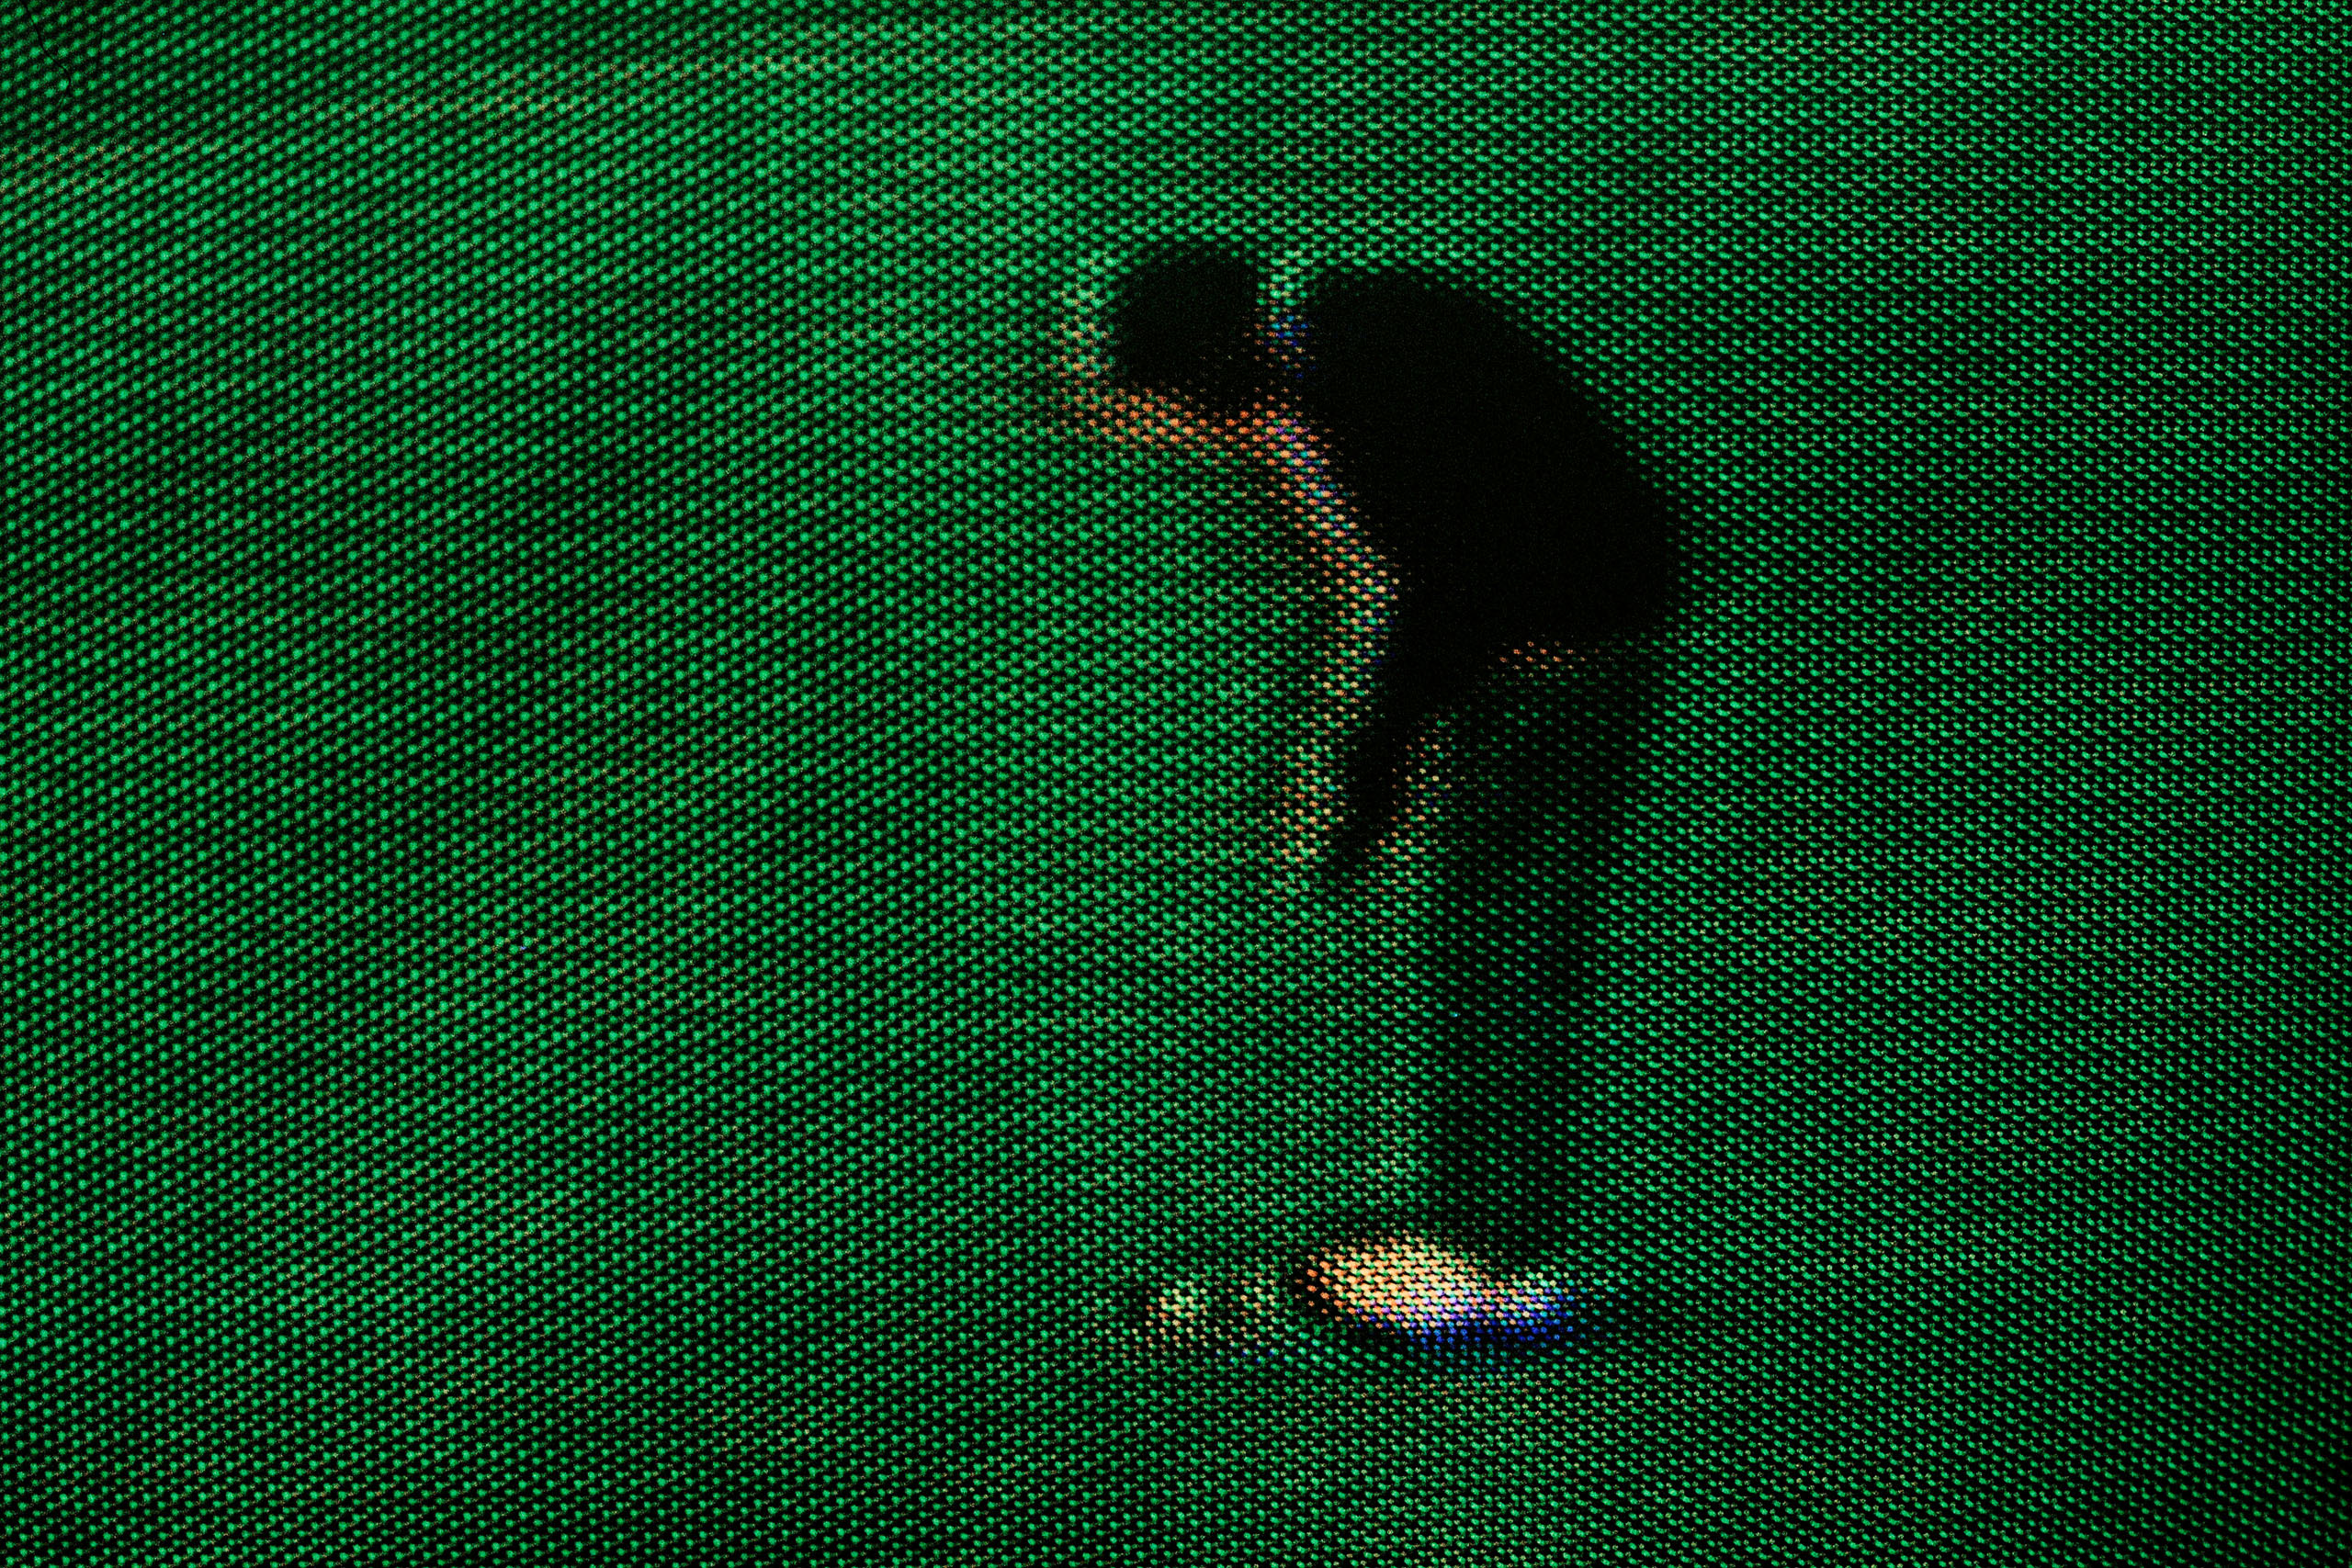 This Shot From The Bbc Is Undated, But The Familiar Putting Stroke Is Timeless. Photo by Harry Gruyaert.